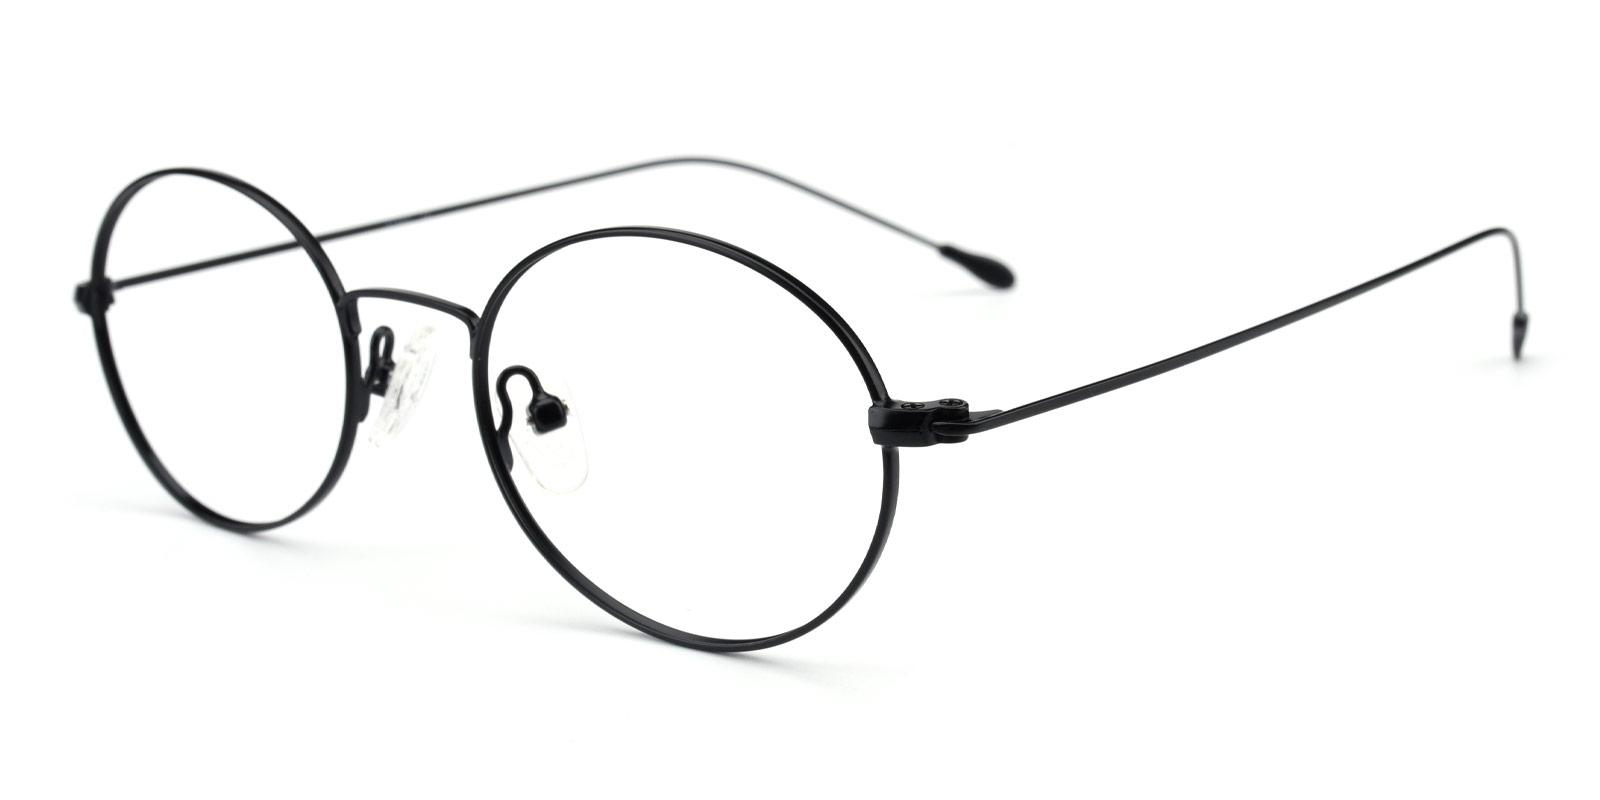 Bertha-Black-Oval-Metal-Eyeglasses-additional1